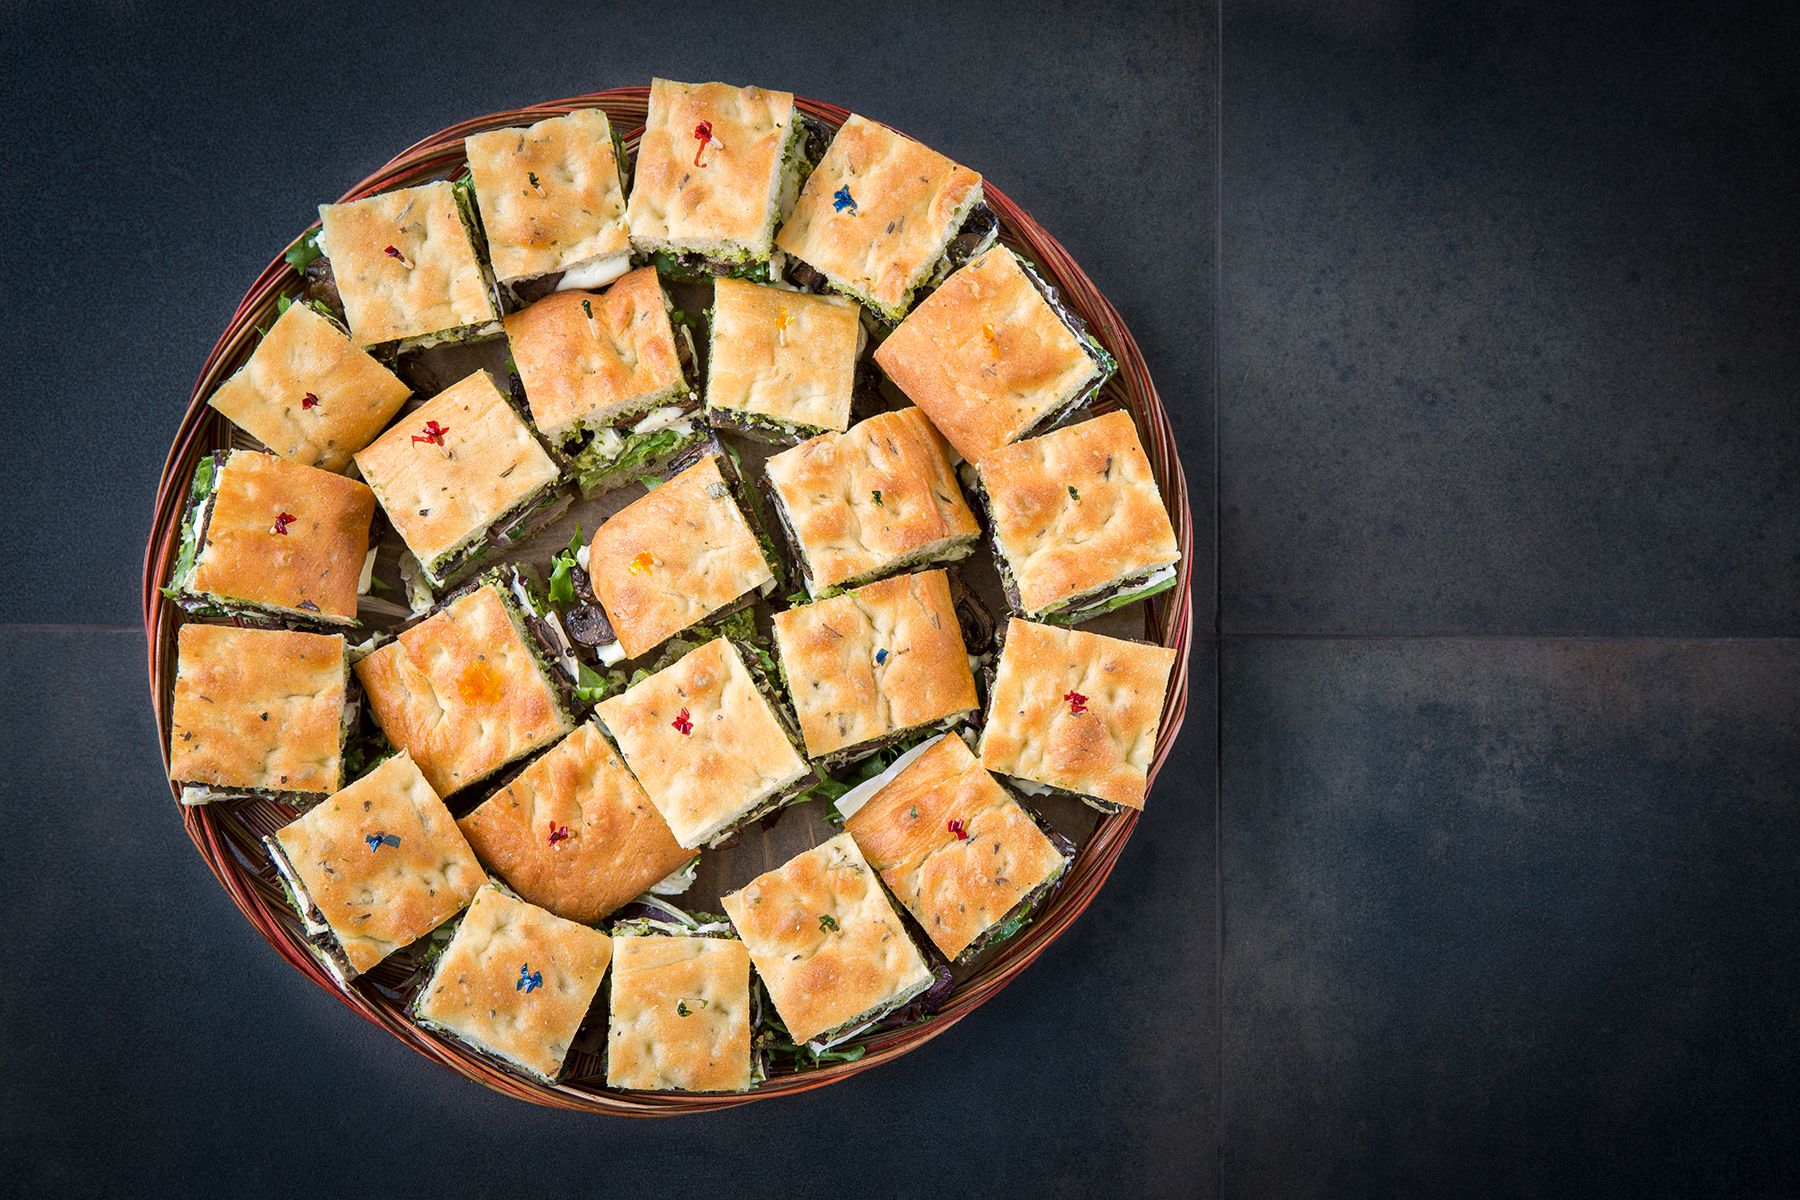 Sandwich platters market hall caterers home our food platters sandwich platters altavistaventures Image collections